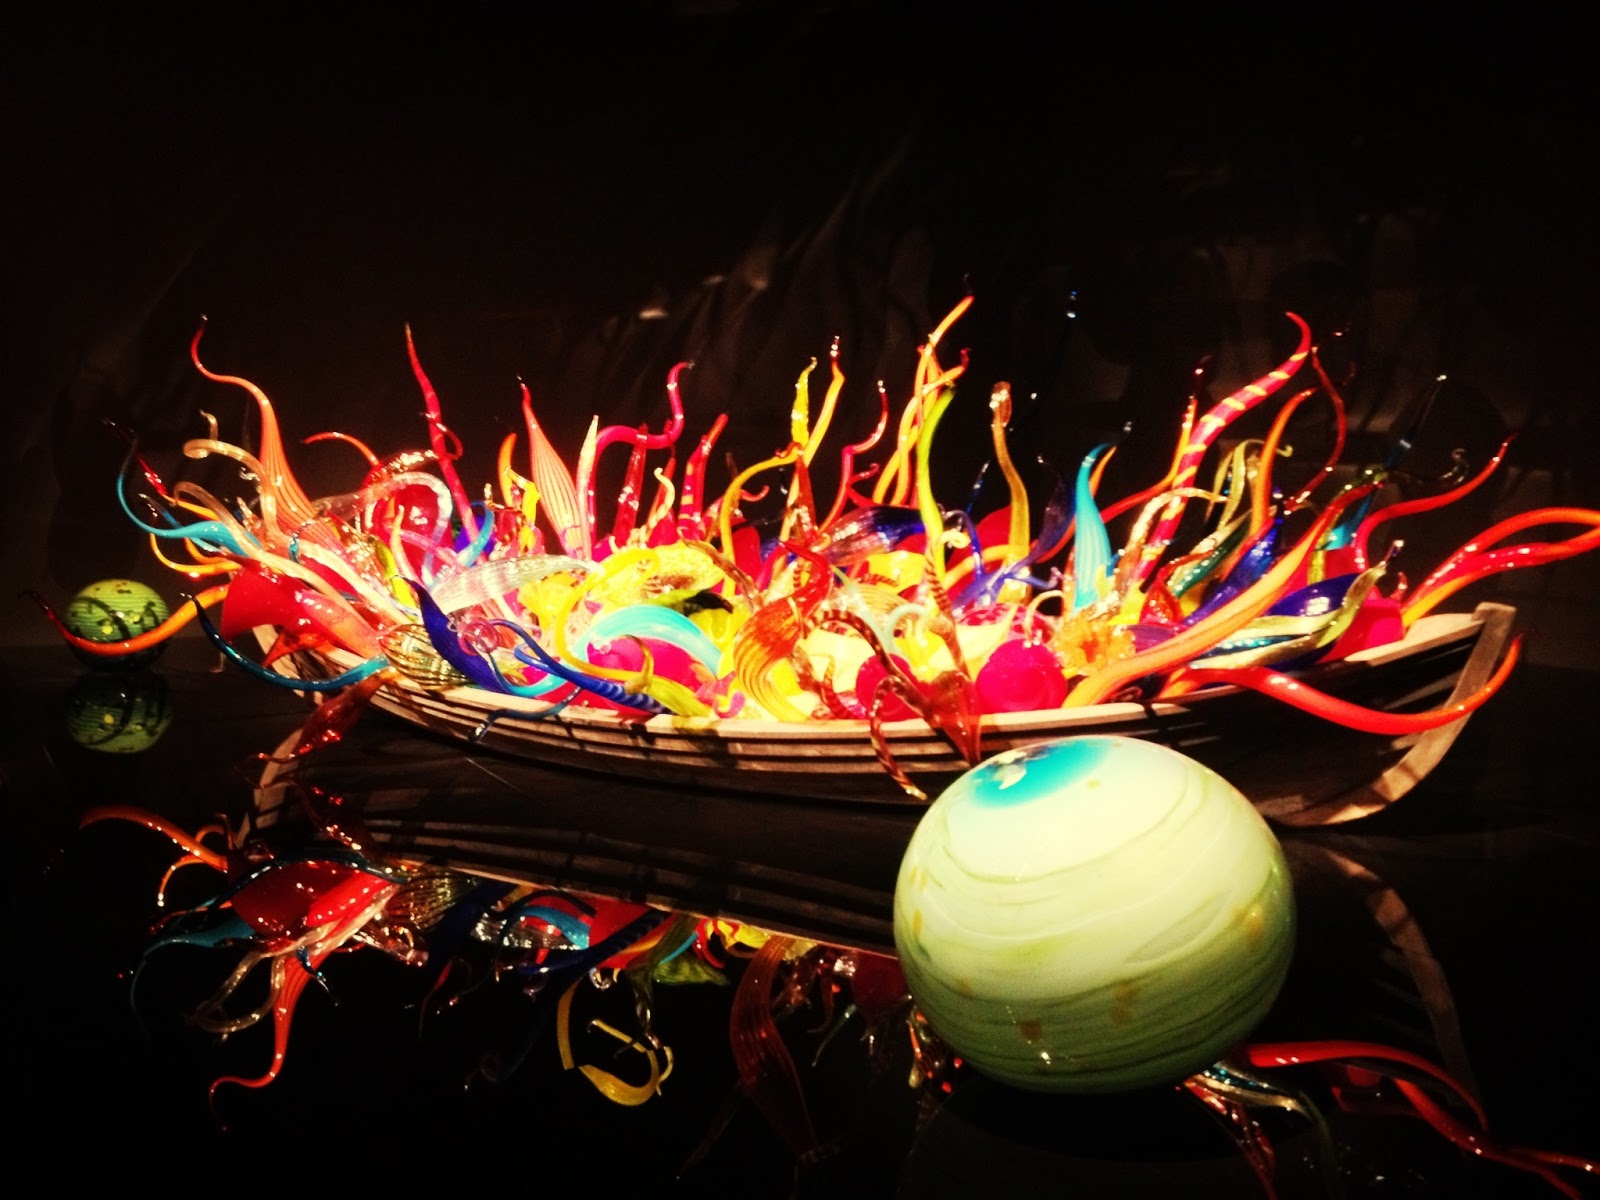 Chihuly Montreal Museum Fine Arts musee des beaux arts blown glass exhibit